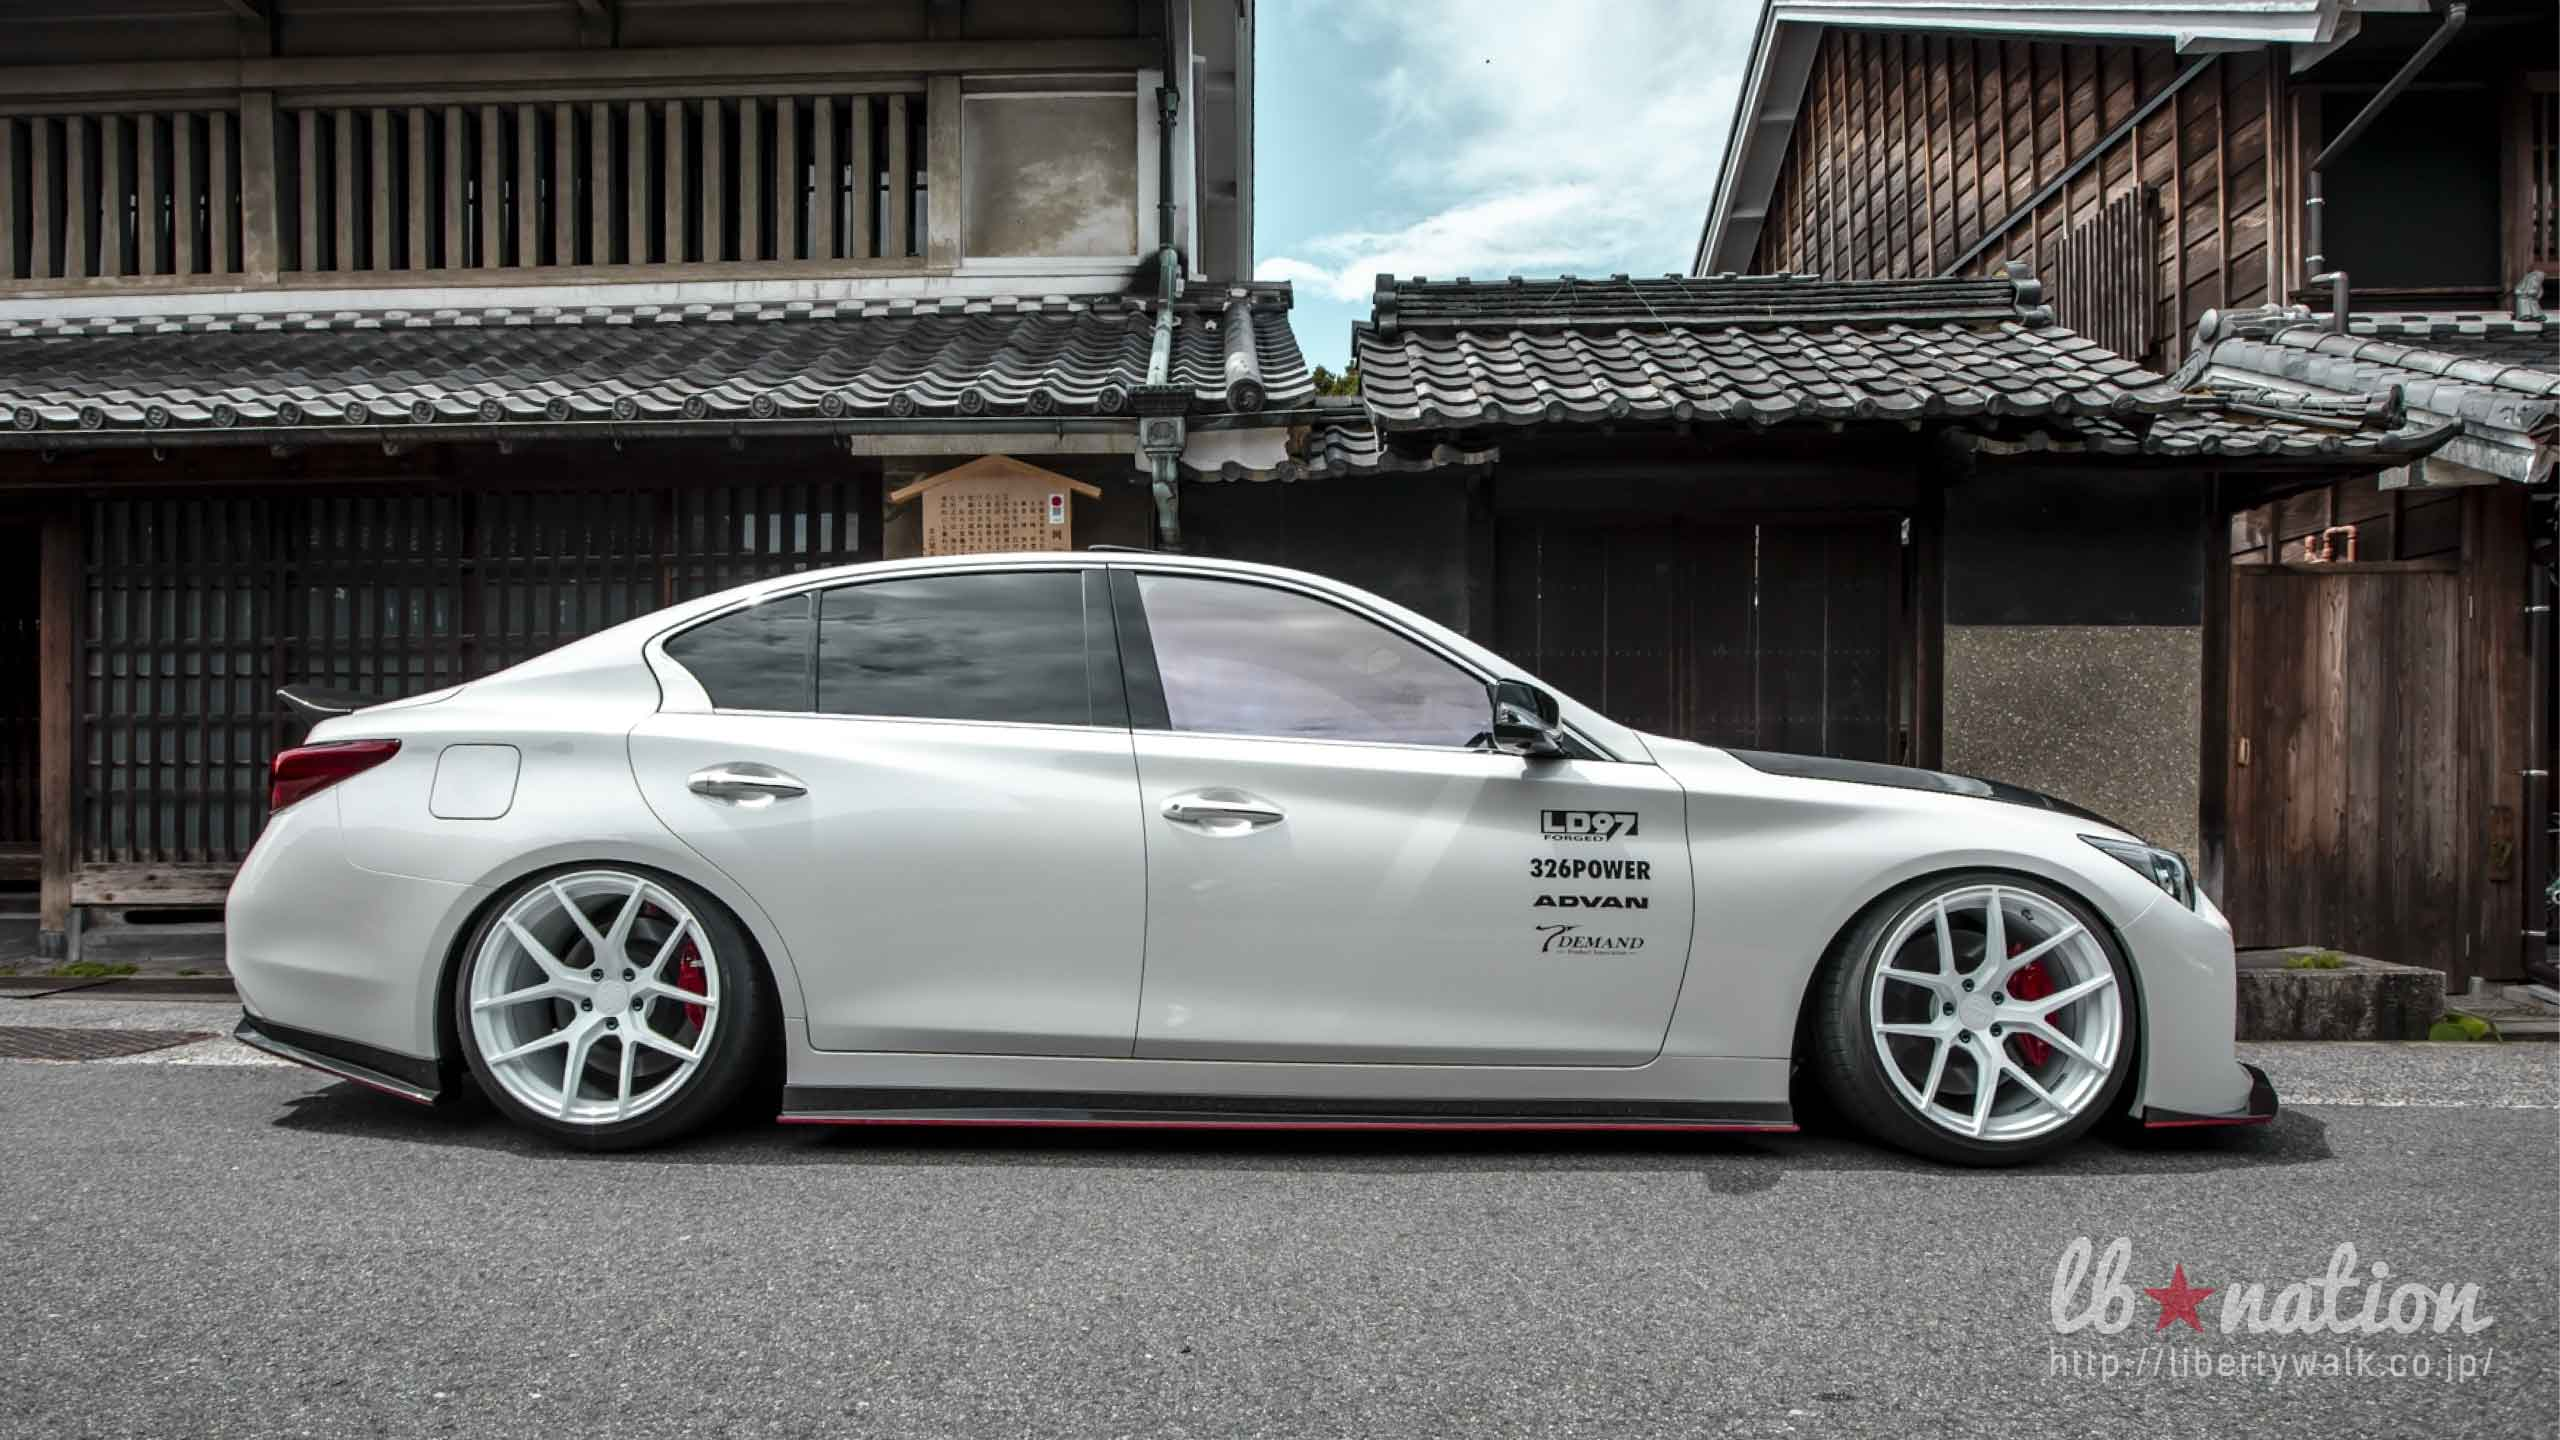 V37_12 lb★nation  NISSAN V37 SKYLINE / INFINITI Q50